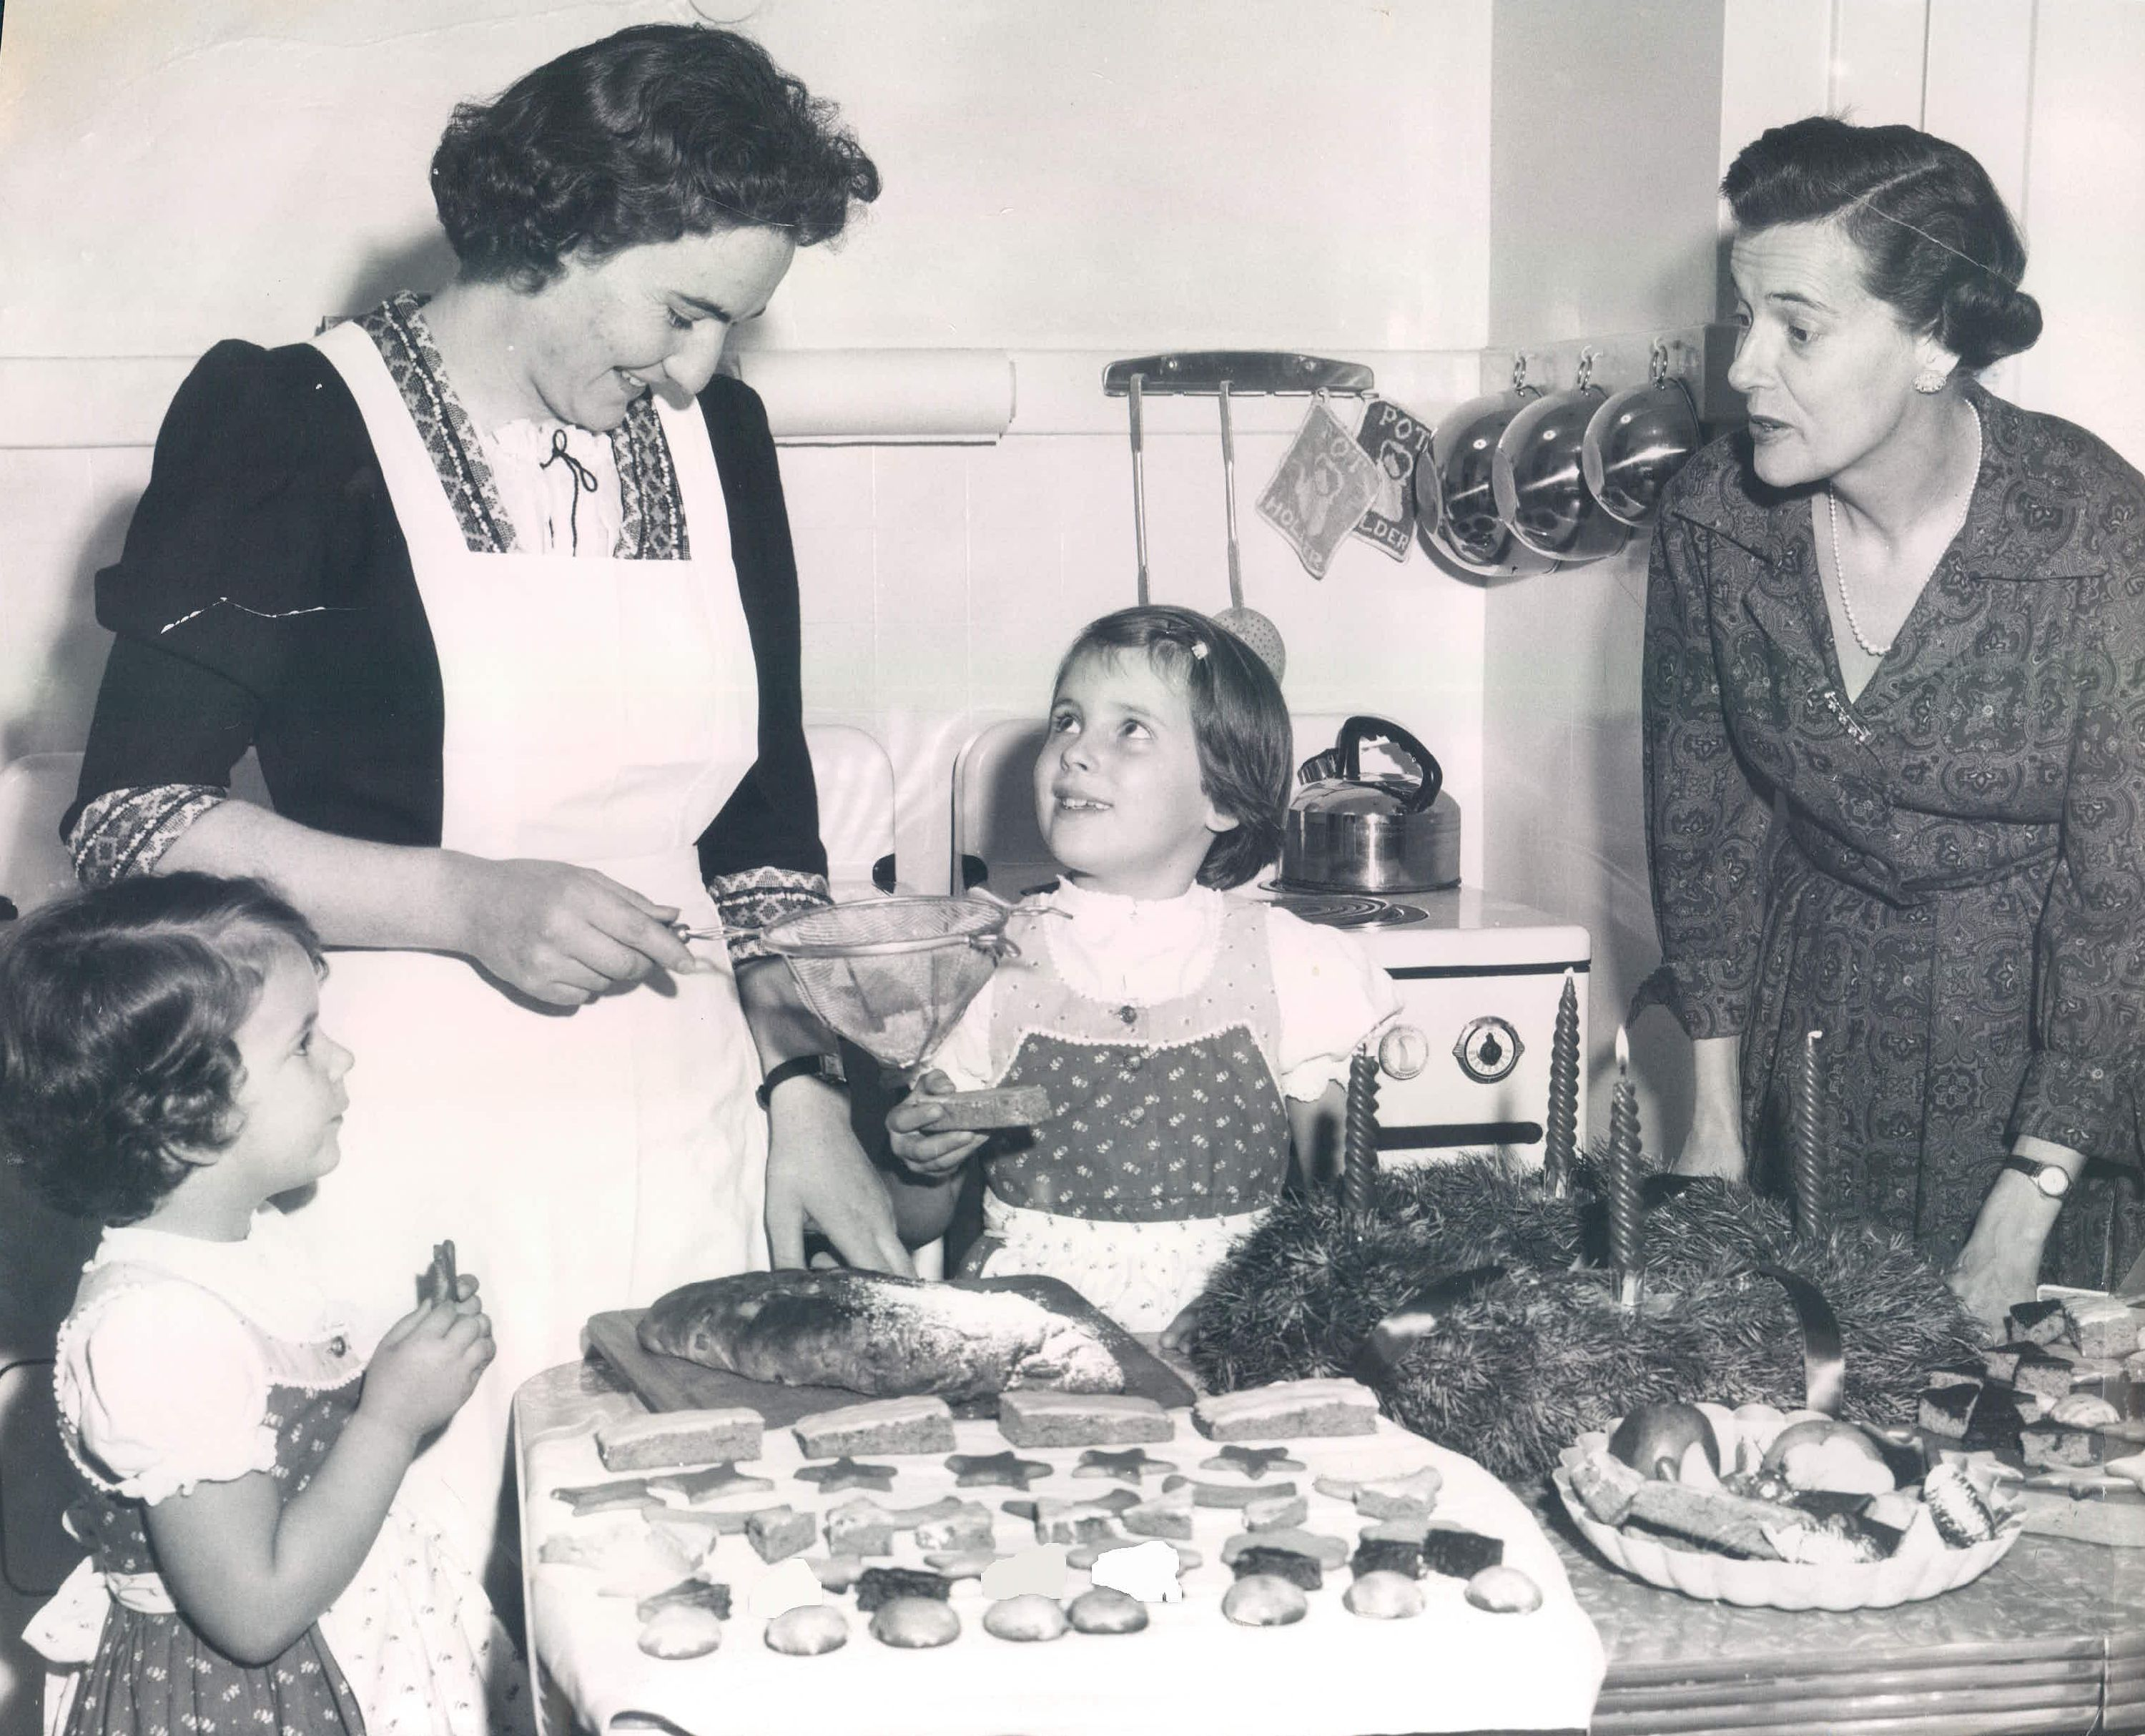 German Goodies: During Advent the German home is filled with the wonderful scent of the Christmas cookies and breads baking in the kitchen. The main celebration is Christmas Eve, when each family member finds a decorated plate full of the goodies under the tree. Keeping the custom here is Mrs. Otto Soltmann, right, wife of the German consul, who supervised the work of her German cook, Miss Edith Mallmann. Tasting goodies were the Soltmann daughters, Madeleine, left, 4, and Diana, 7. Today they will light the third candle on the Advent wreath for the third Sunday of Advent. (Photo by Harold Smith/The Seattle Times/JR Partners via Getty Images)